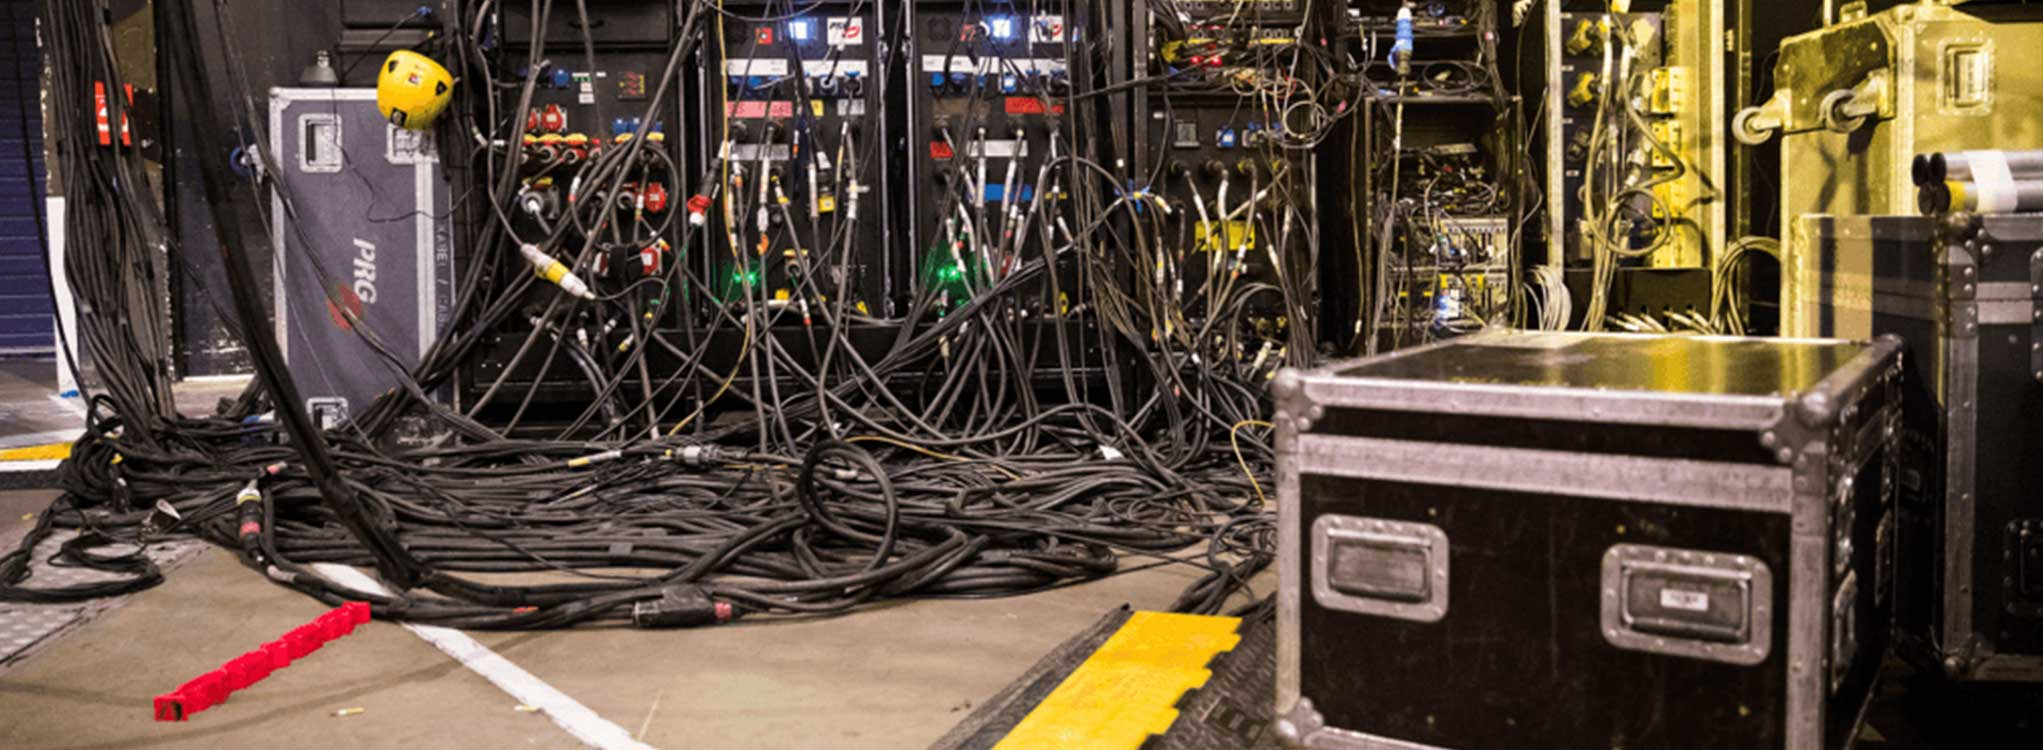 night-of-the-proms-backstage-1